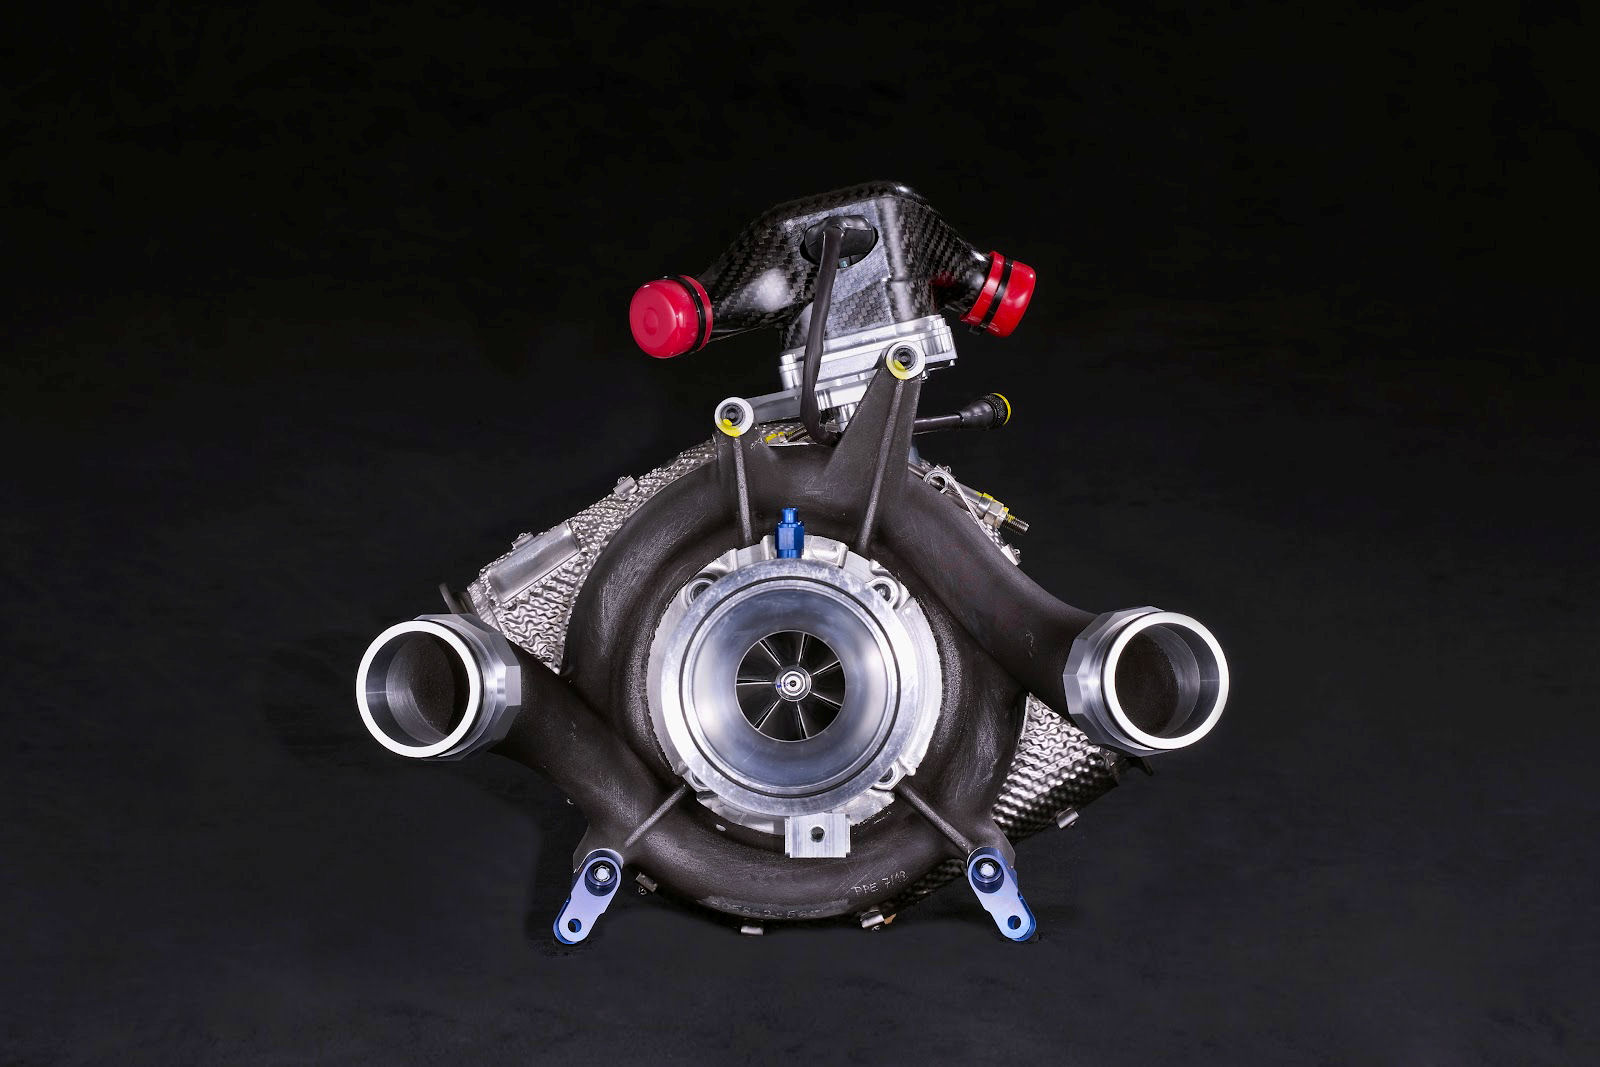 Electric Turbocharger: Engine Booster at Low Cost